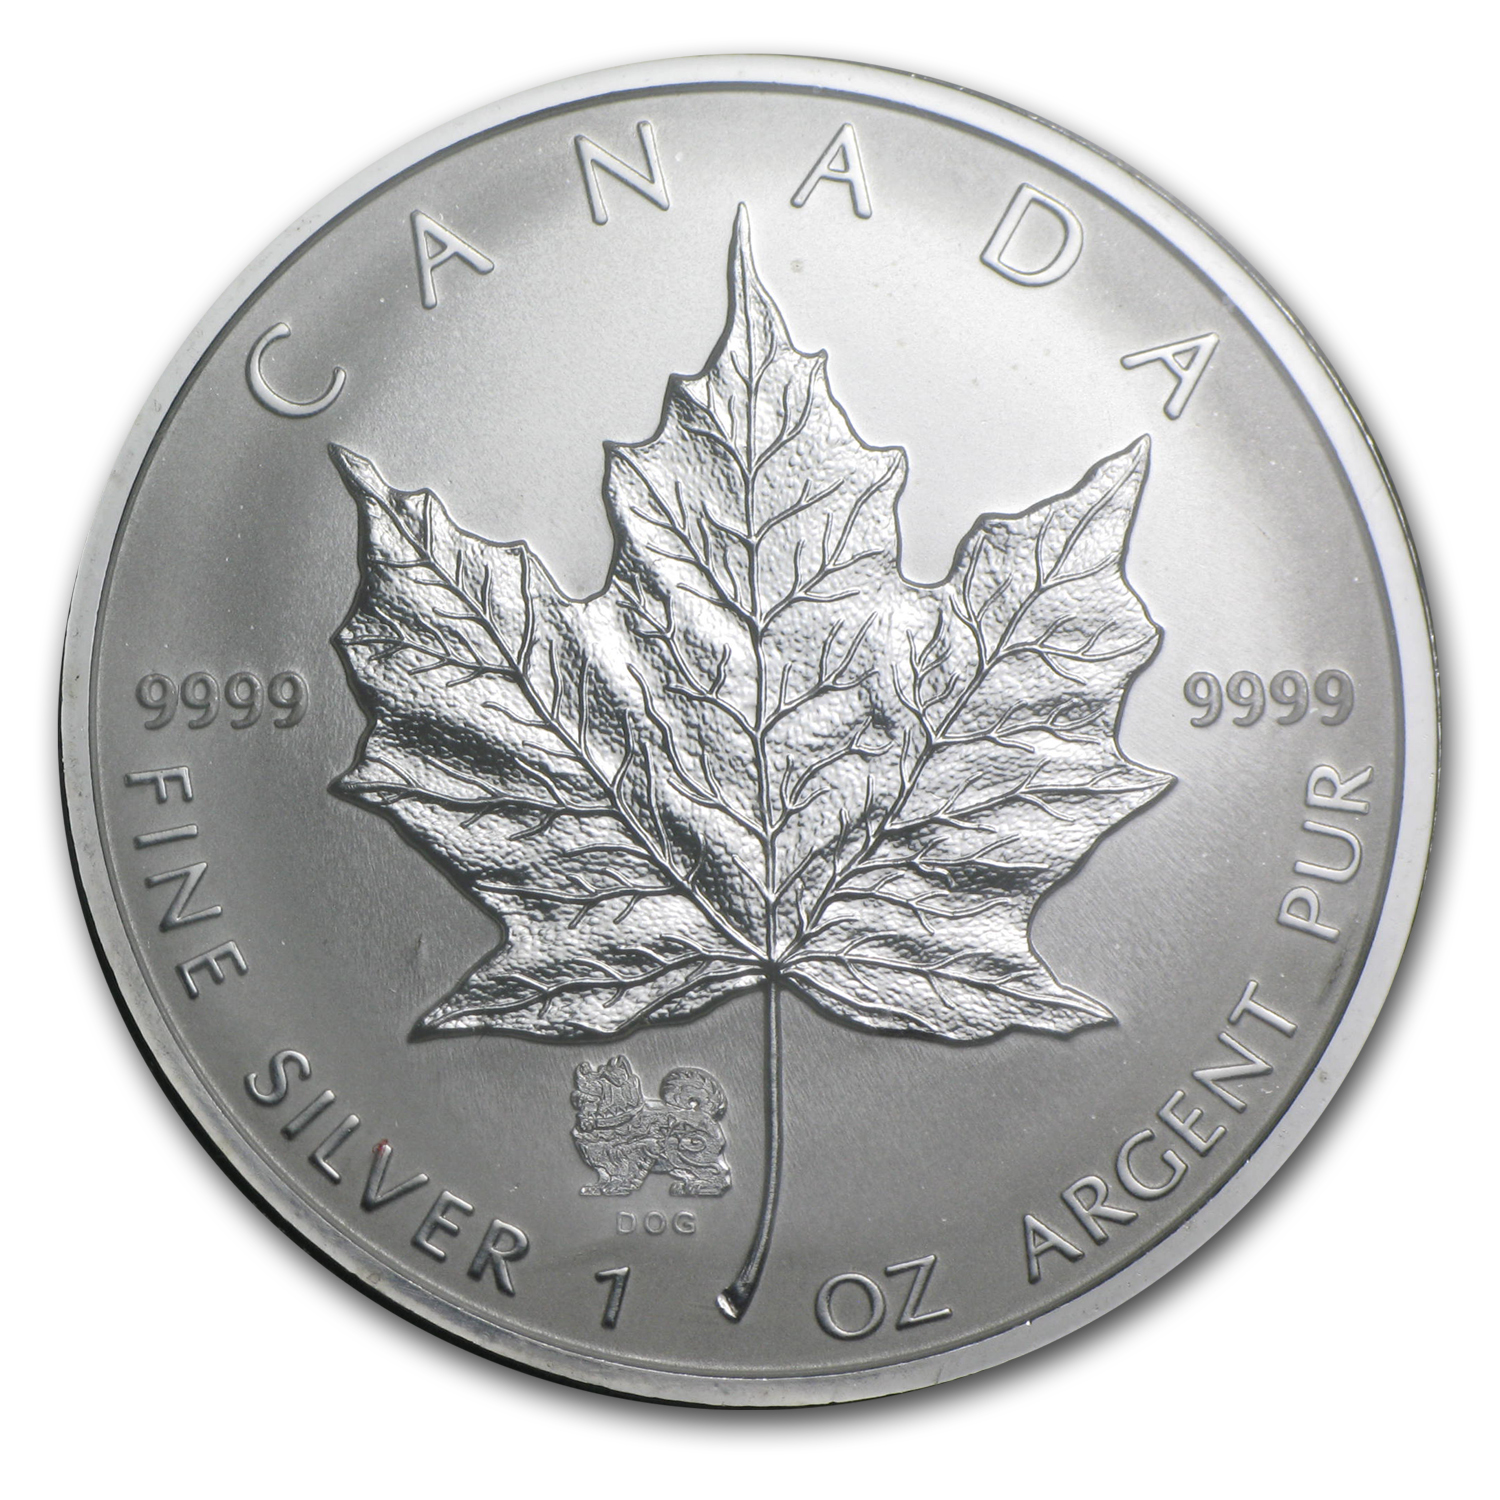 2006 Canada 1 oz Silver Maple Leaf Lunar Dog Privy